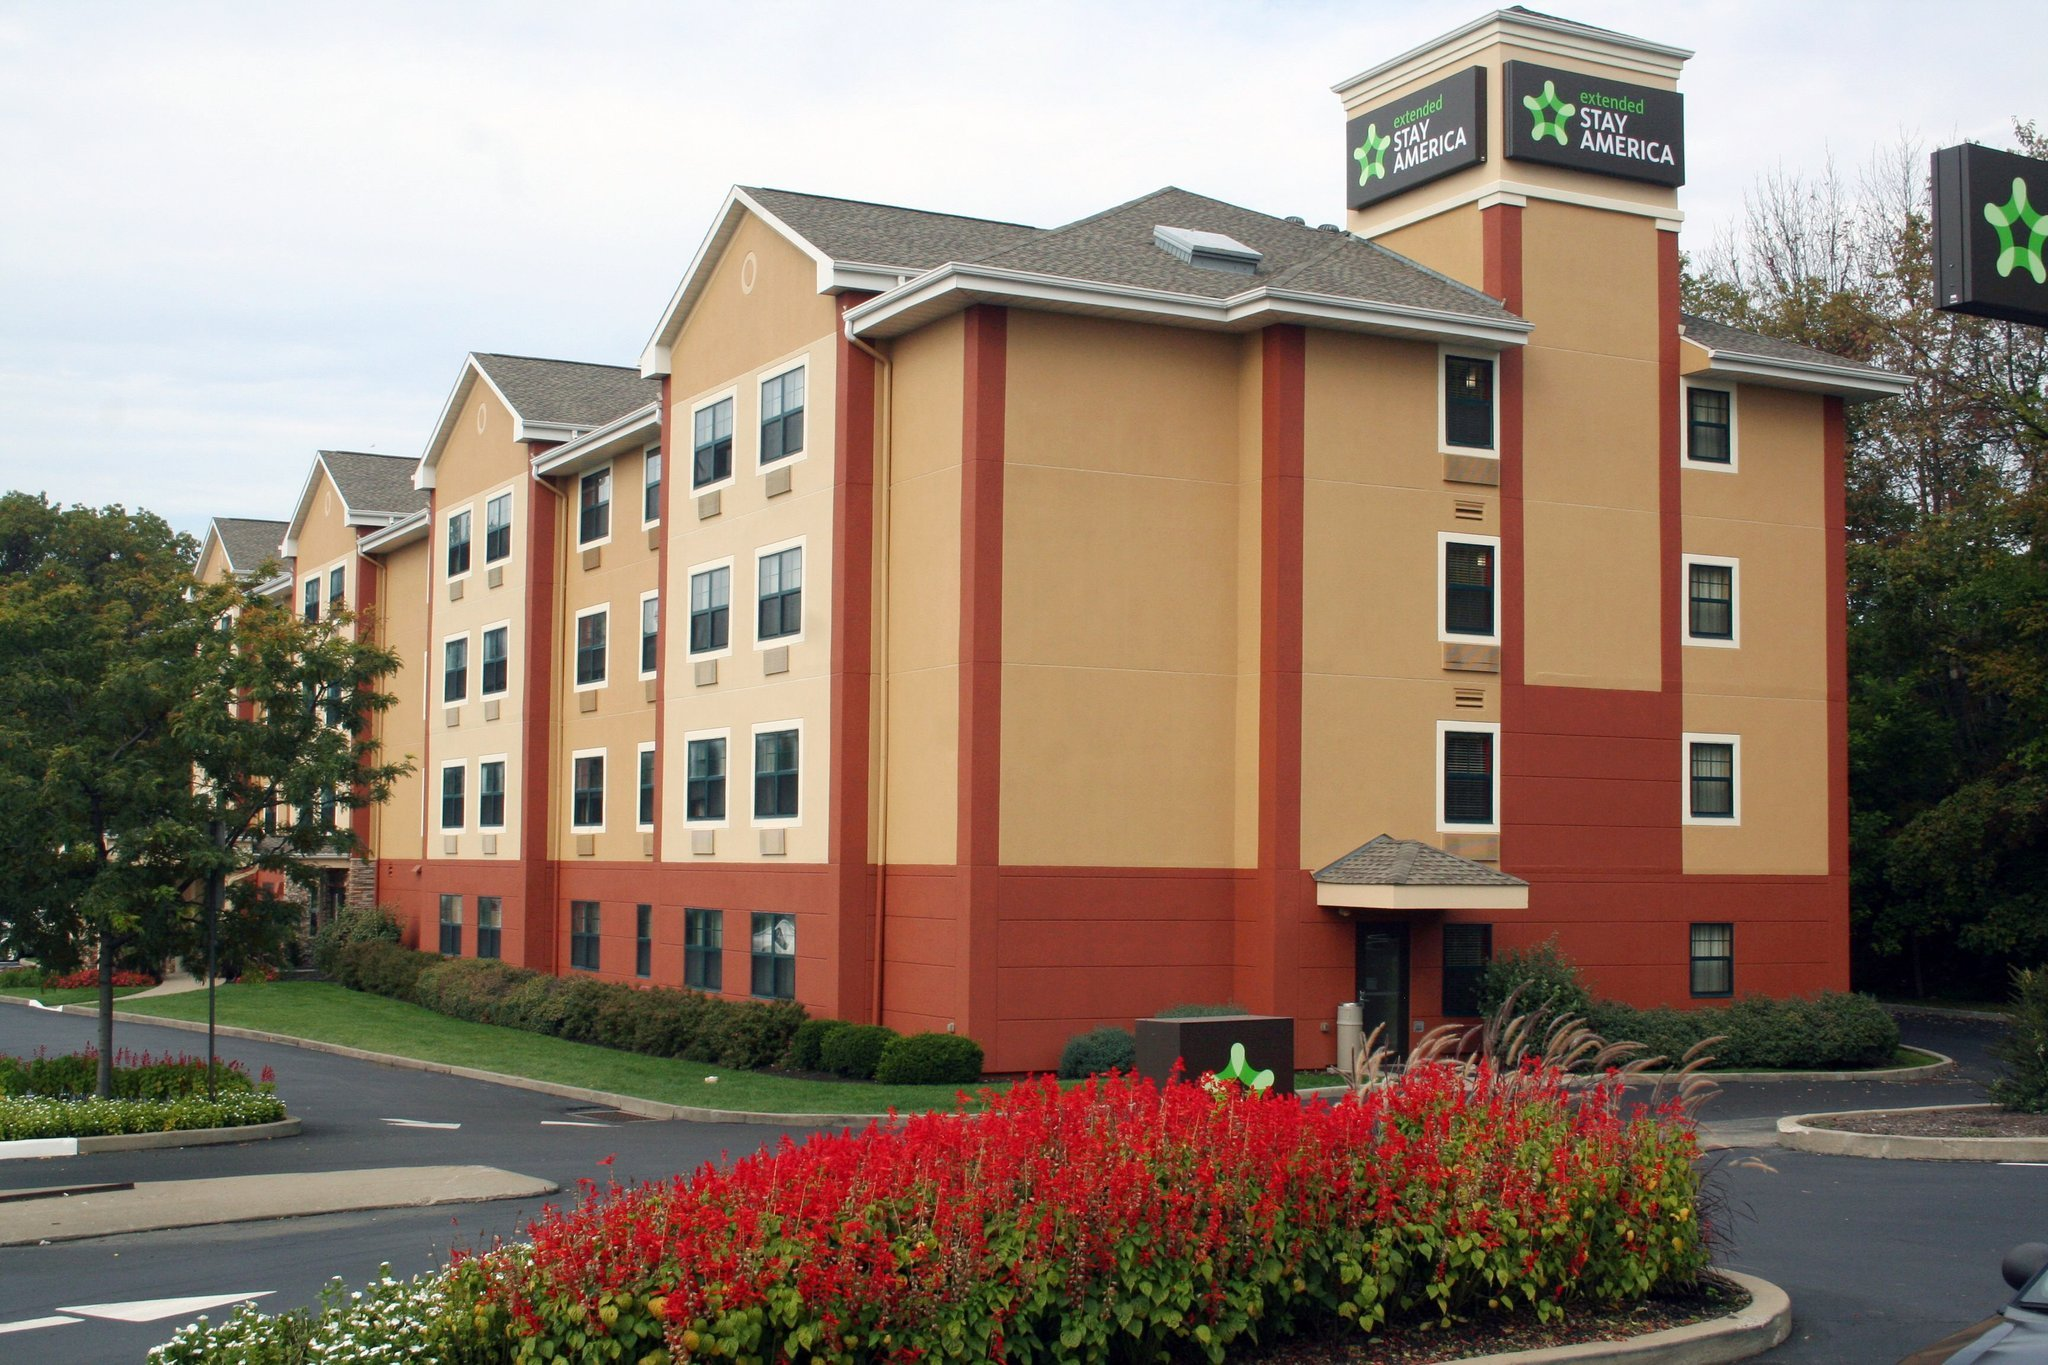 Extended Stay America Pittsburgh West Mifflin: 21 fotos  #813829 2048 1365